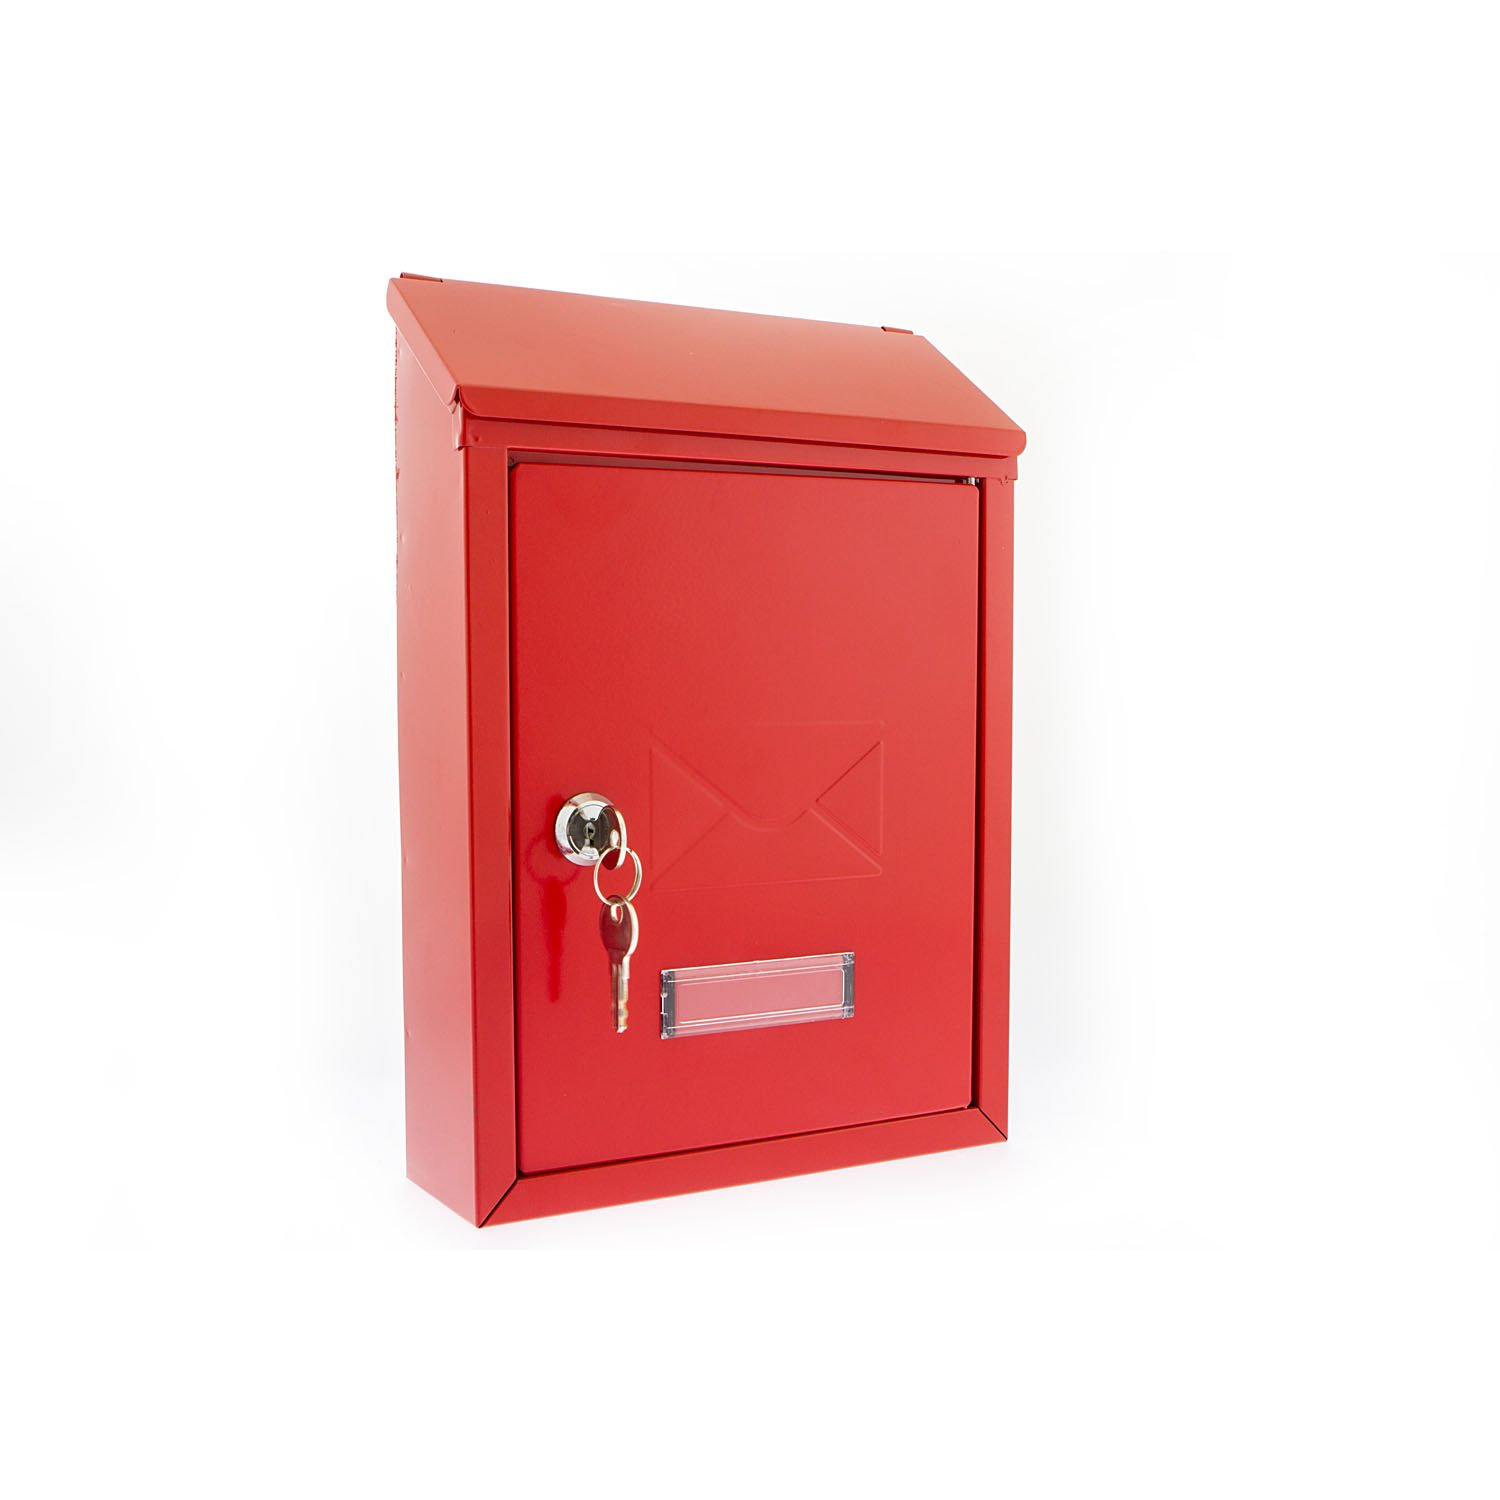 G2 Trent Red Metal Steel Post Mail Letter Box Postbox Mailbox